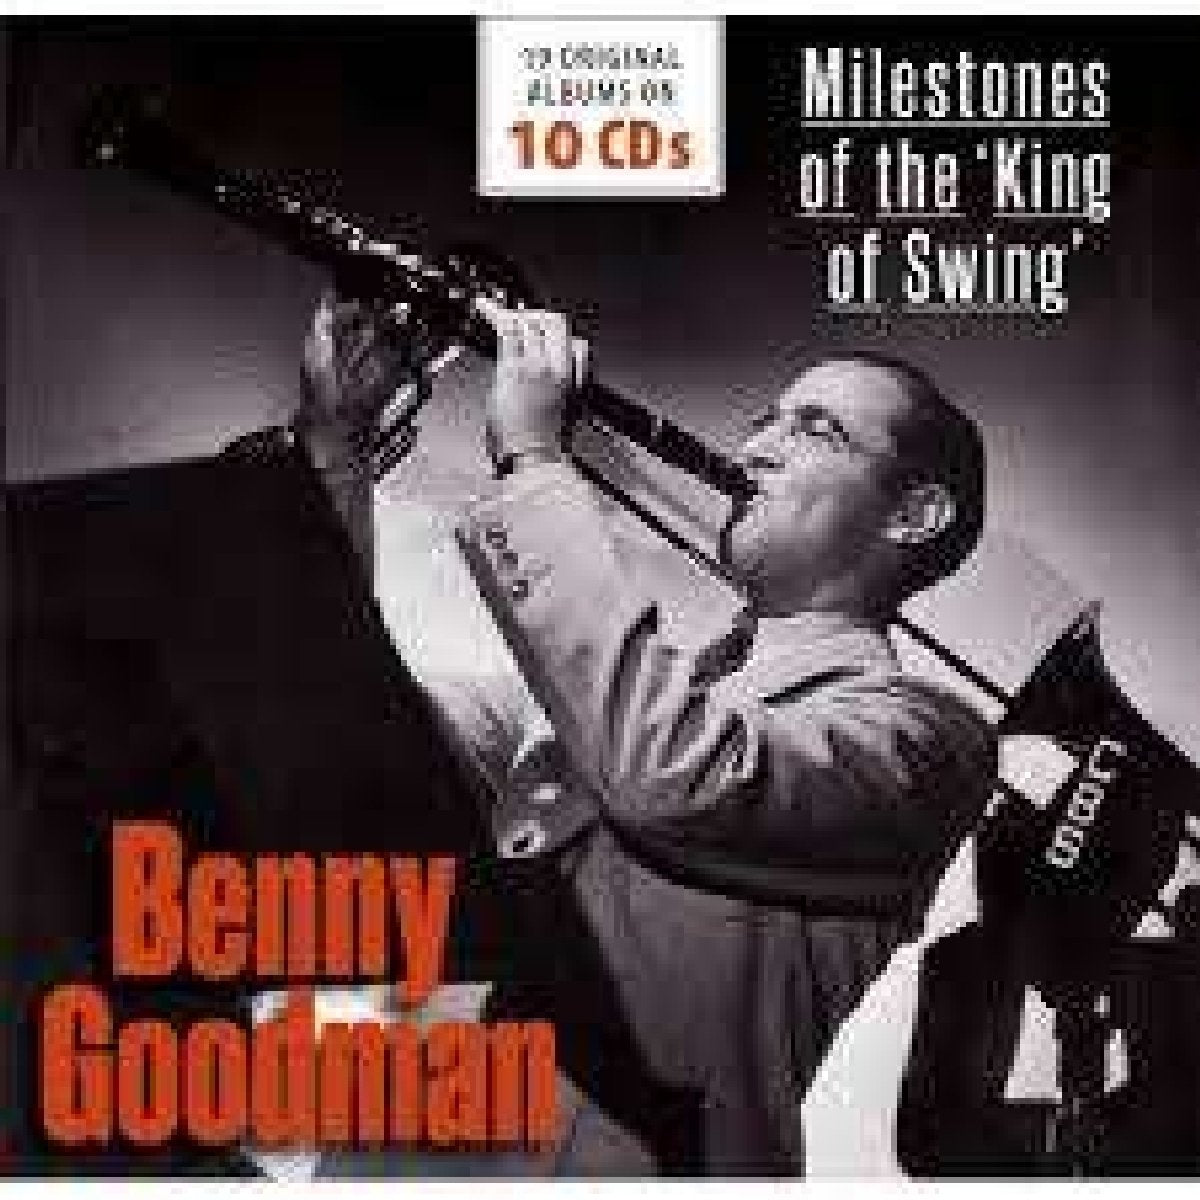 BENNY GOODMAN: Milestones Of The King Of Swing (10 CDs)